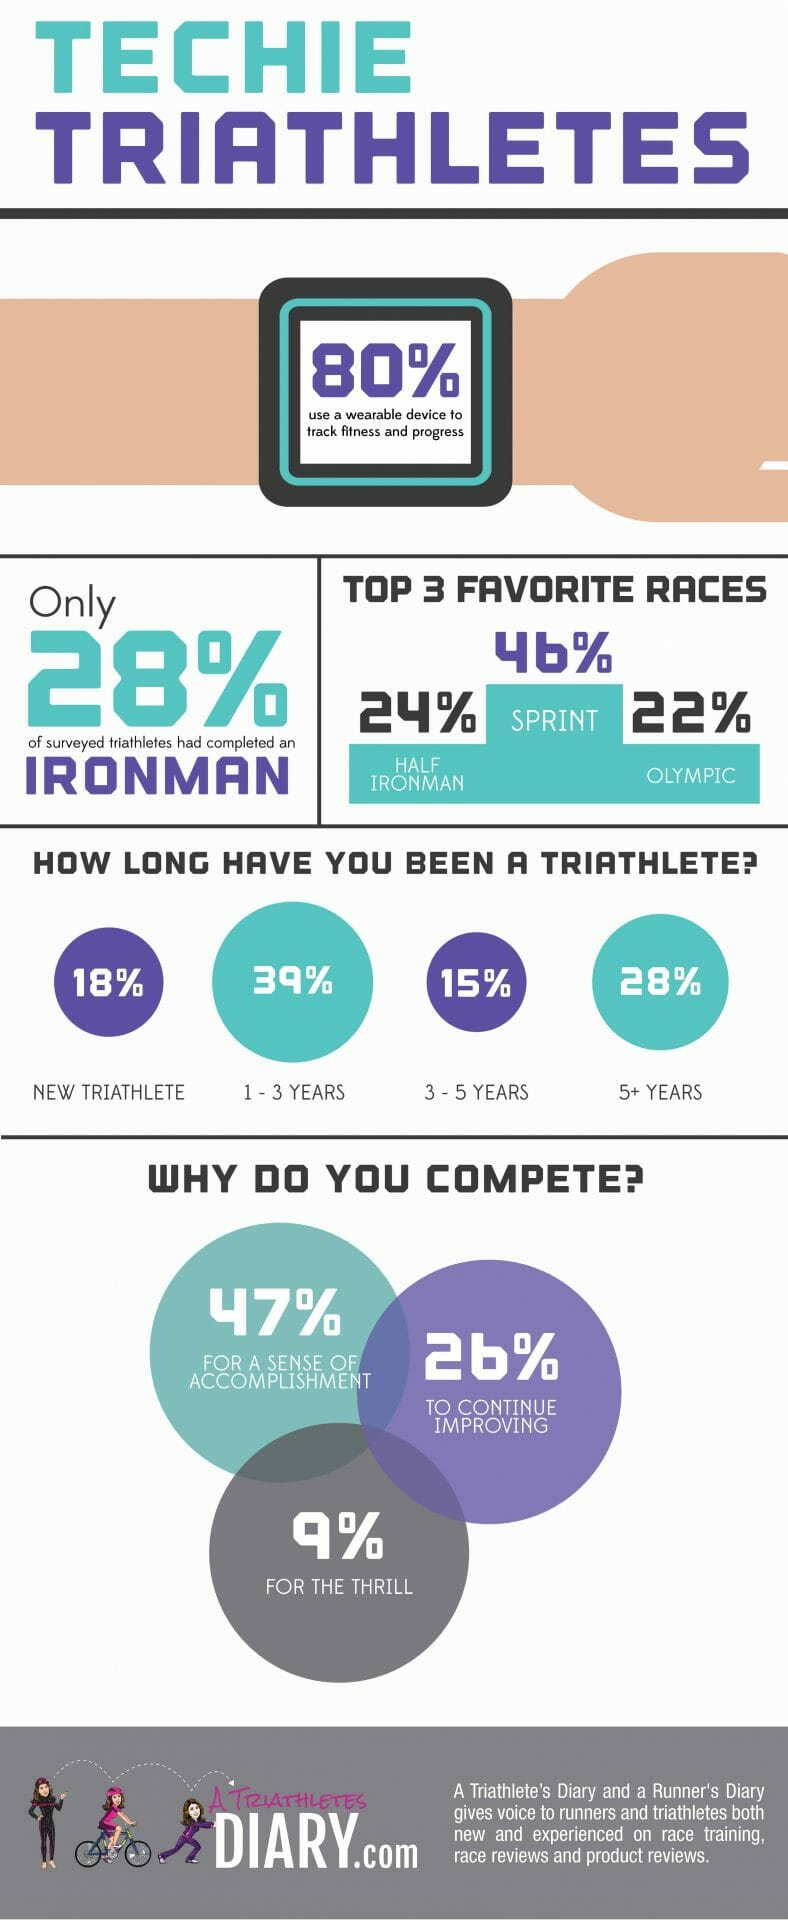 Triathletes and Technology